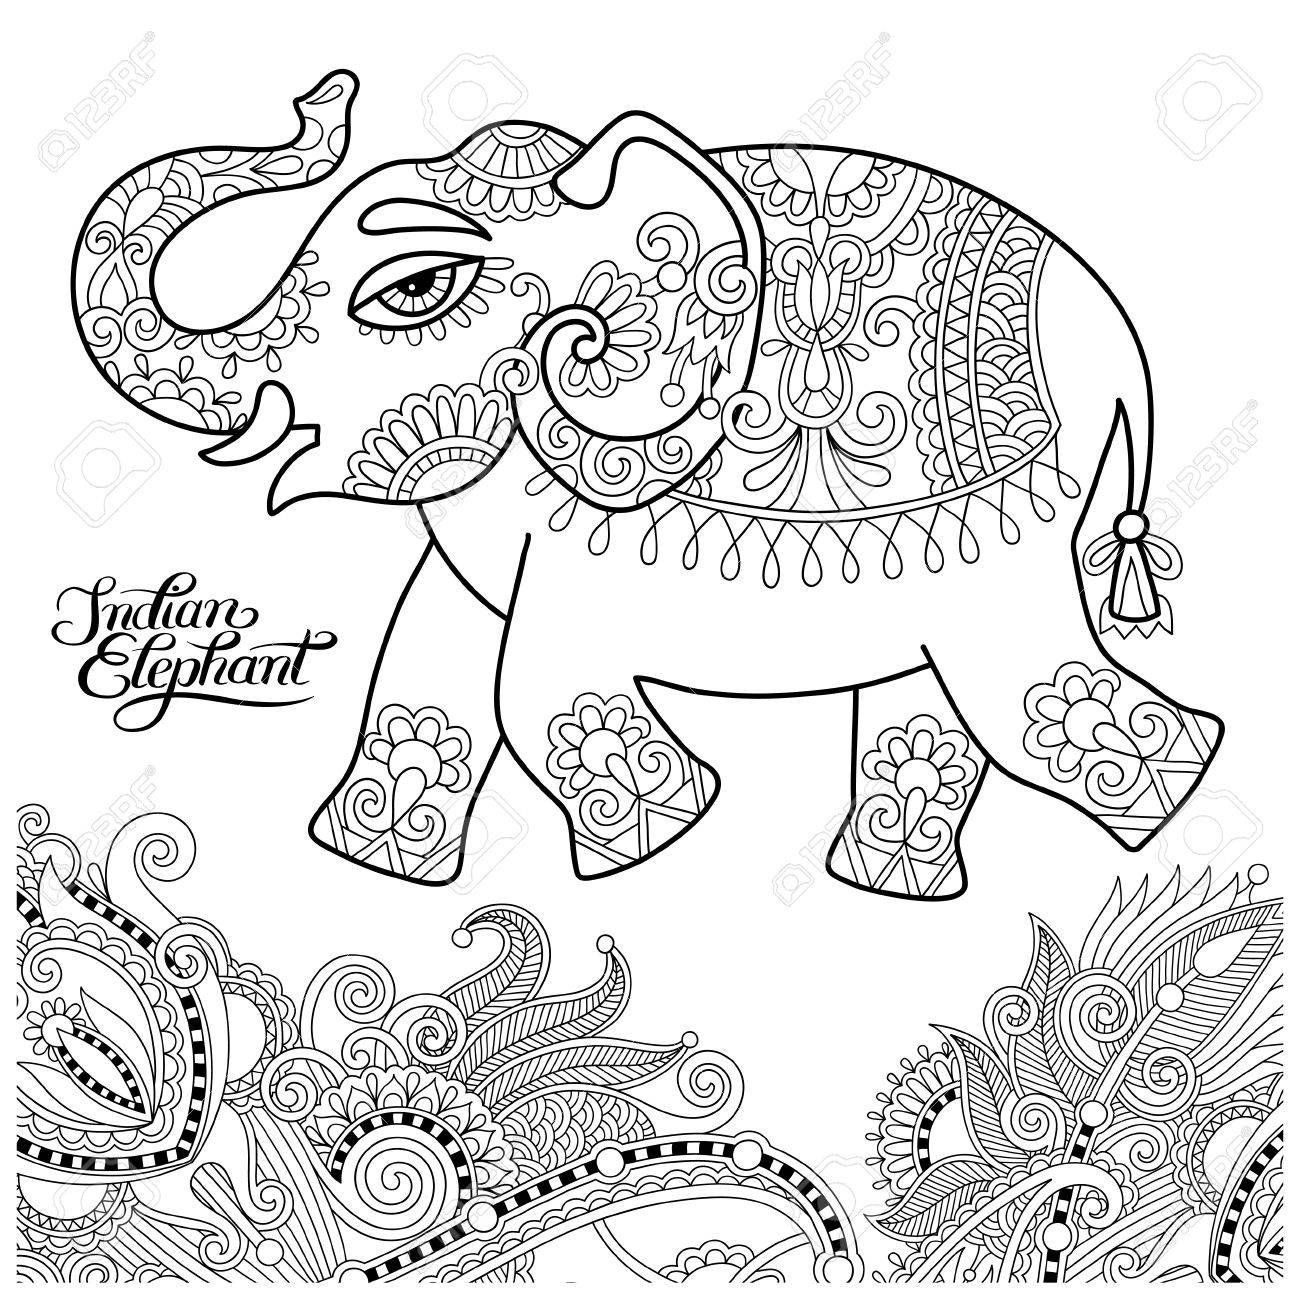 Ethnic Indian Elephant Line Original Drawing Adults Coloring Book Page Black And White Vector